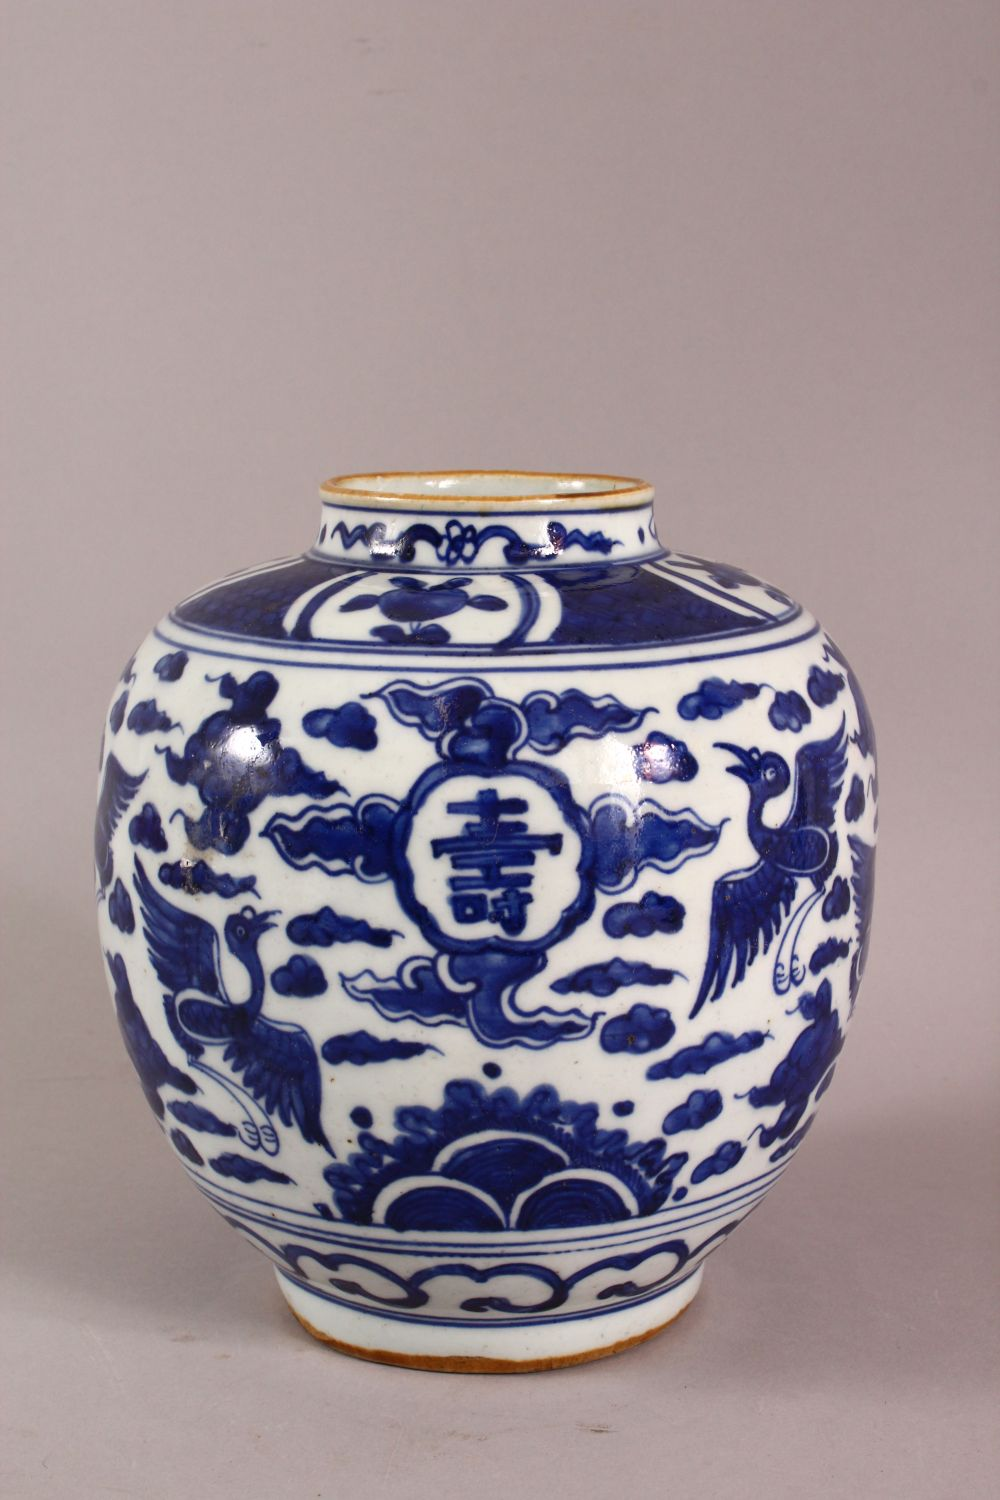 A CHINESE BLUE & WHITE PORCELAIN GINGER JAR, decorated with birds and symbols amongst clouds, rabbit - Image 4 of 7